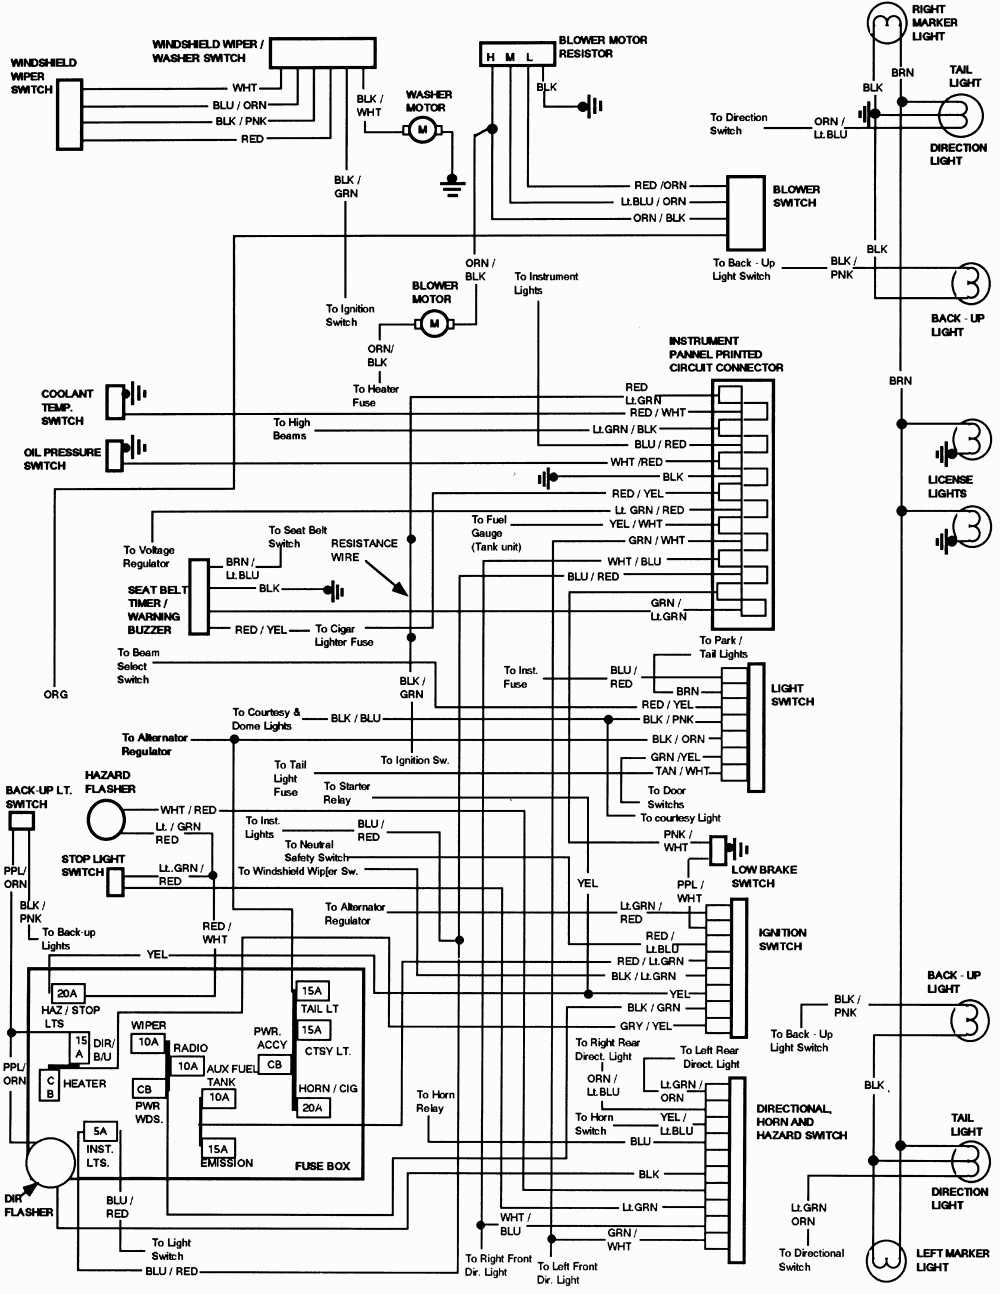 Diagram  1988 F150 Wiring Diagram Full Version Hd Quality Wiring Diagram